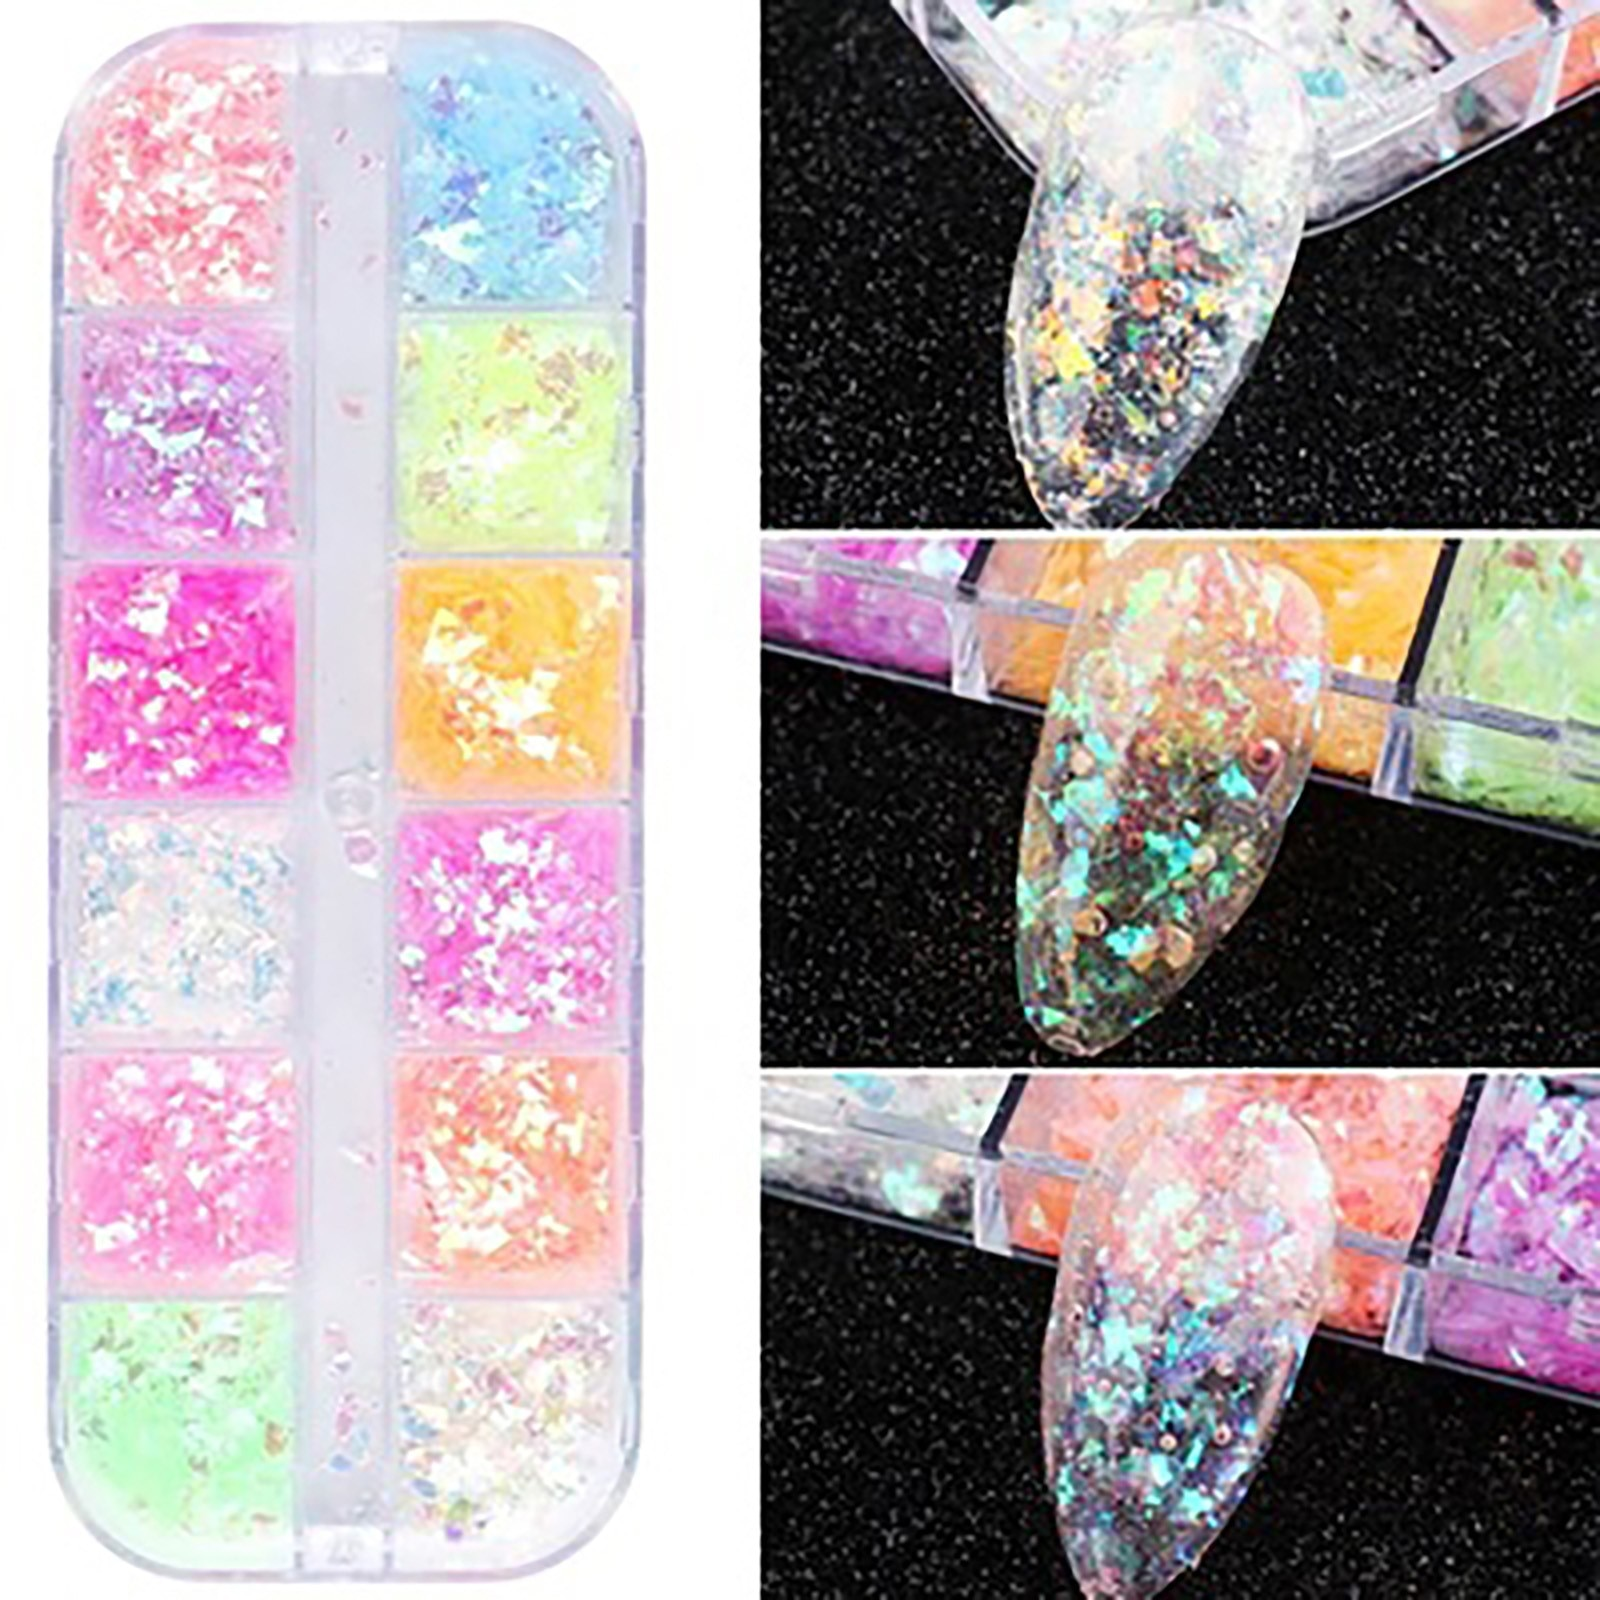 Full Beauty Mixed Hexagon 12 Color Nail Dust Sets Holo Glitter Sequins Flakes Manicure Decoration Na